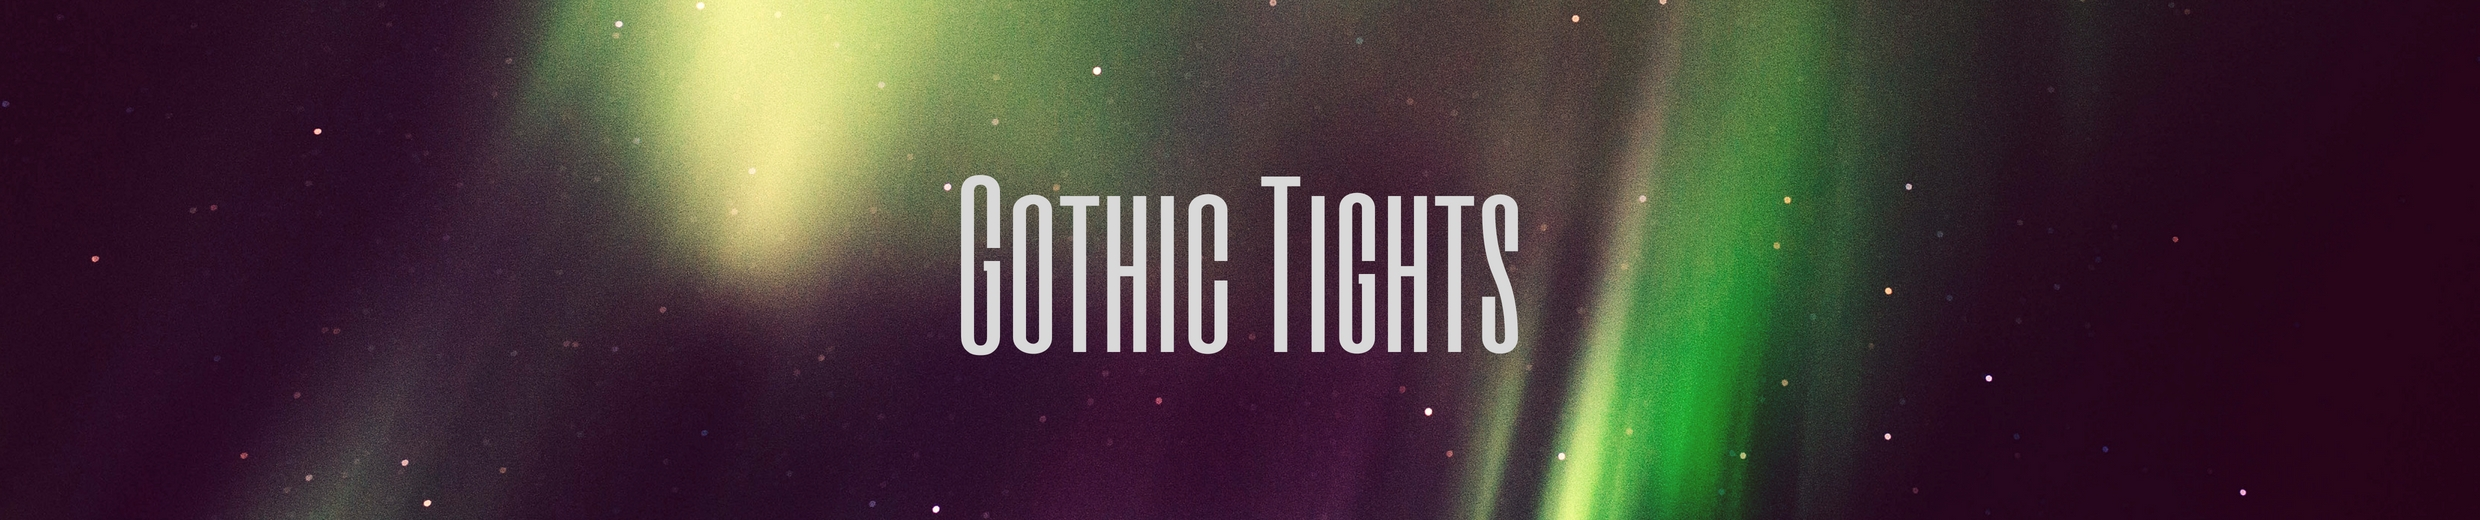 Wholesale Gothic Tights, Stockings and Hosiery